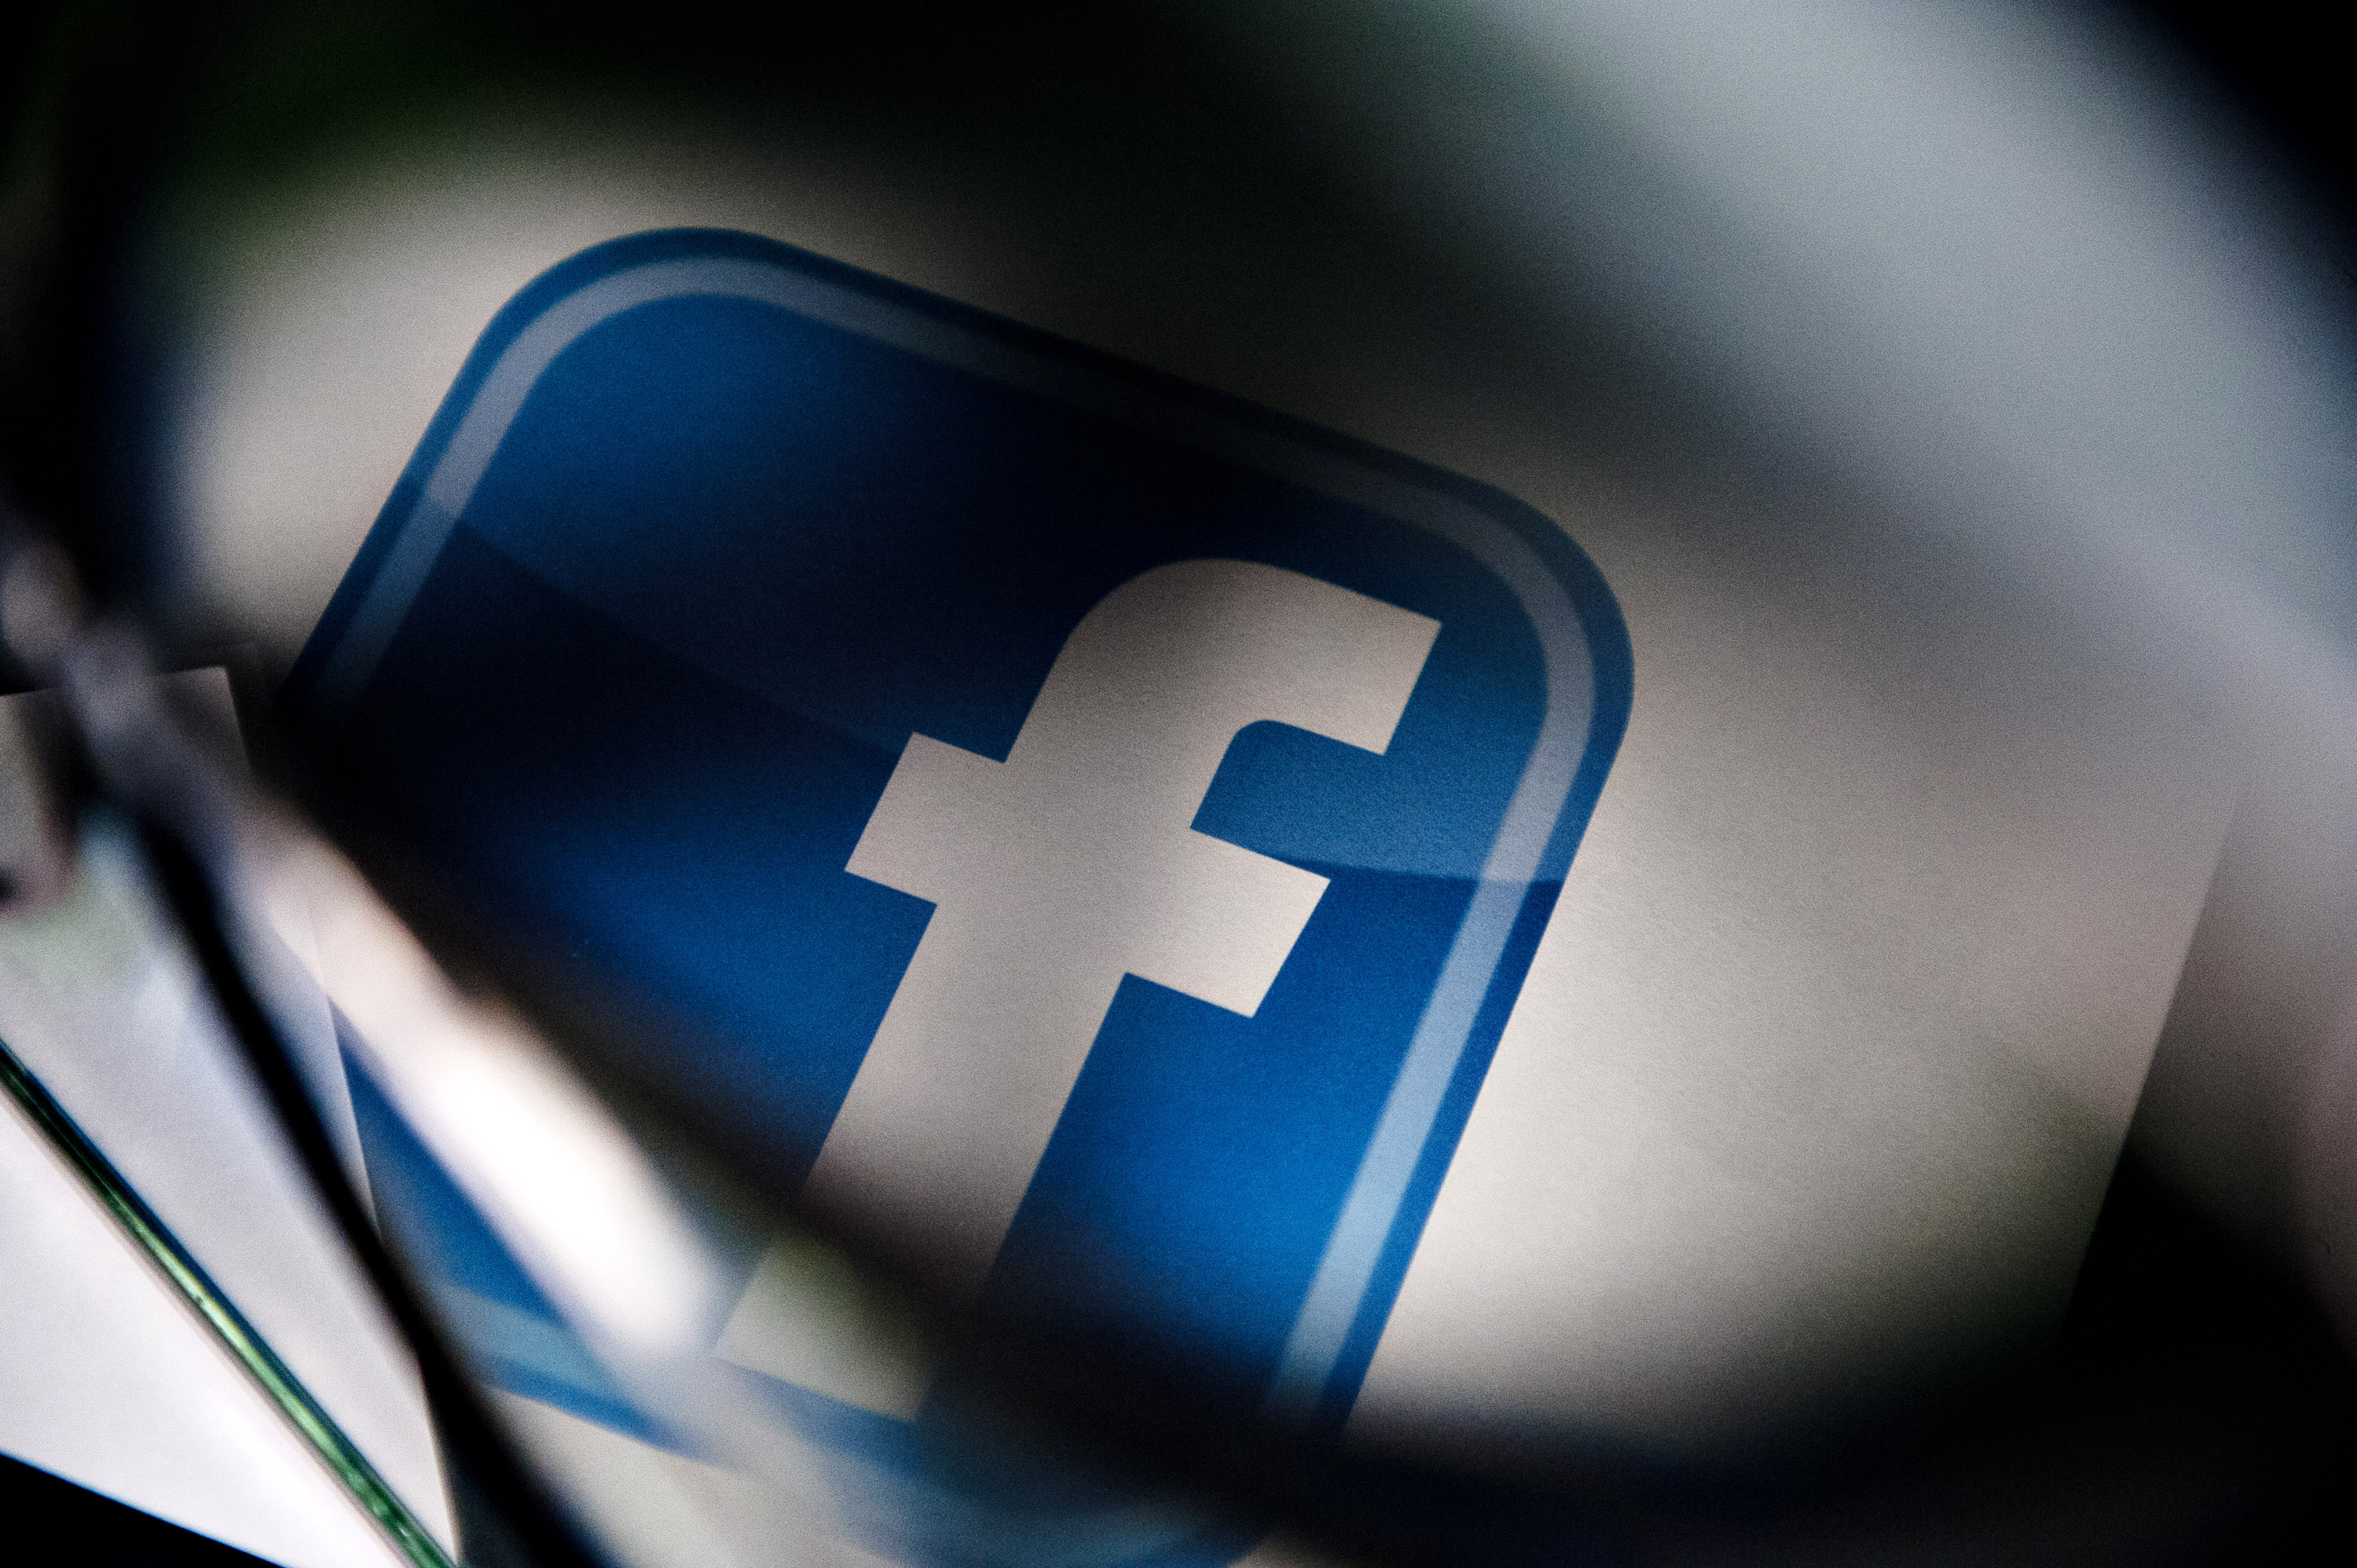 A Facebook logo is displayed for a photograph in Tiskilwa, Illinois, U.S.,Jan. 29, 2013.